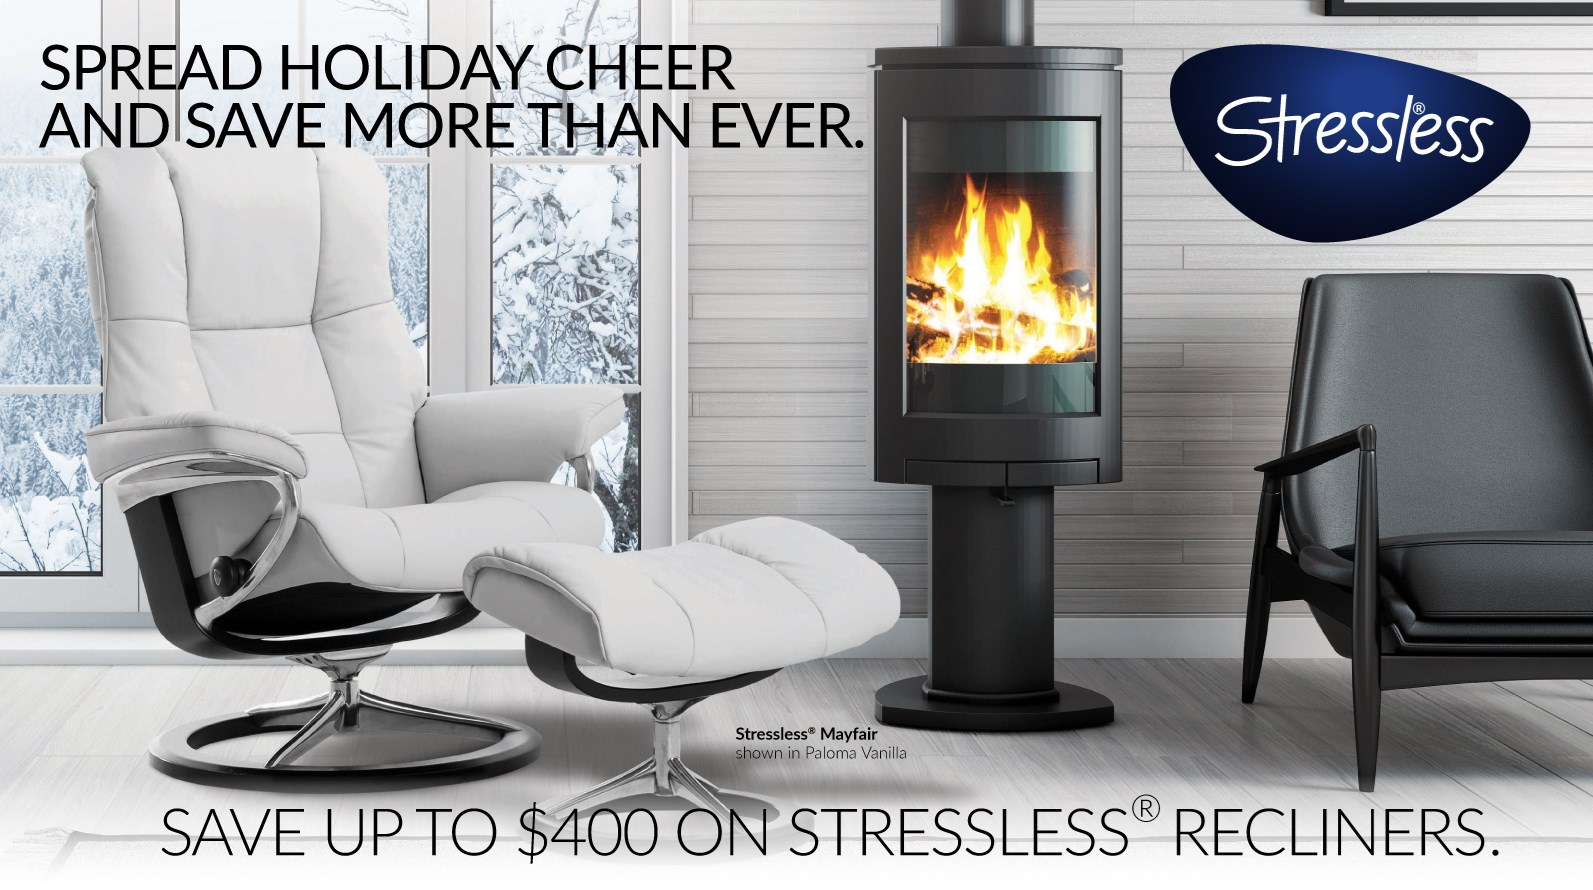 Stressless Charity of Choice Promotion